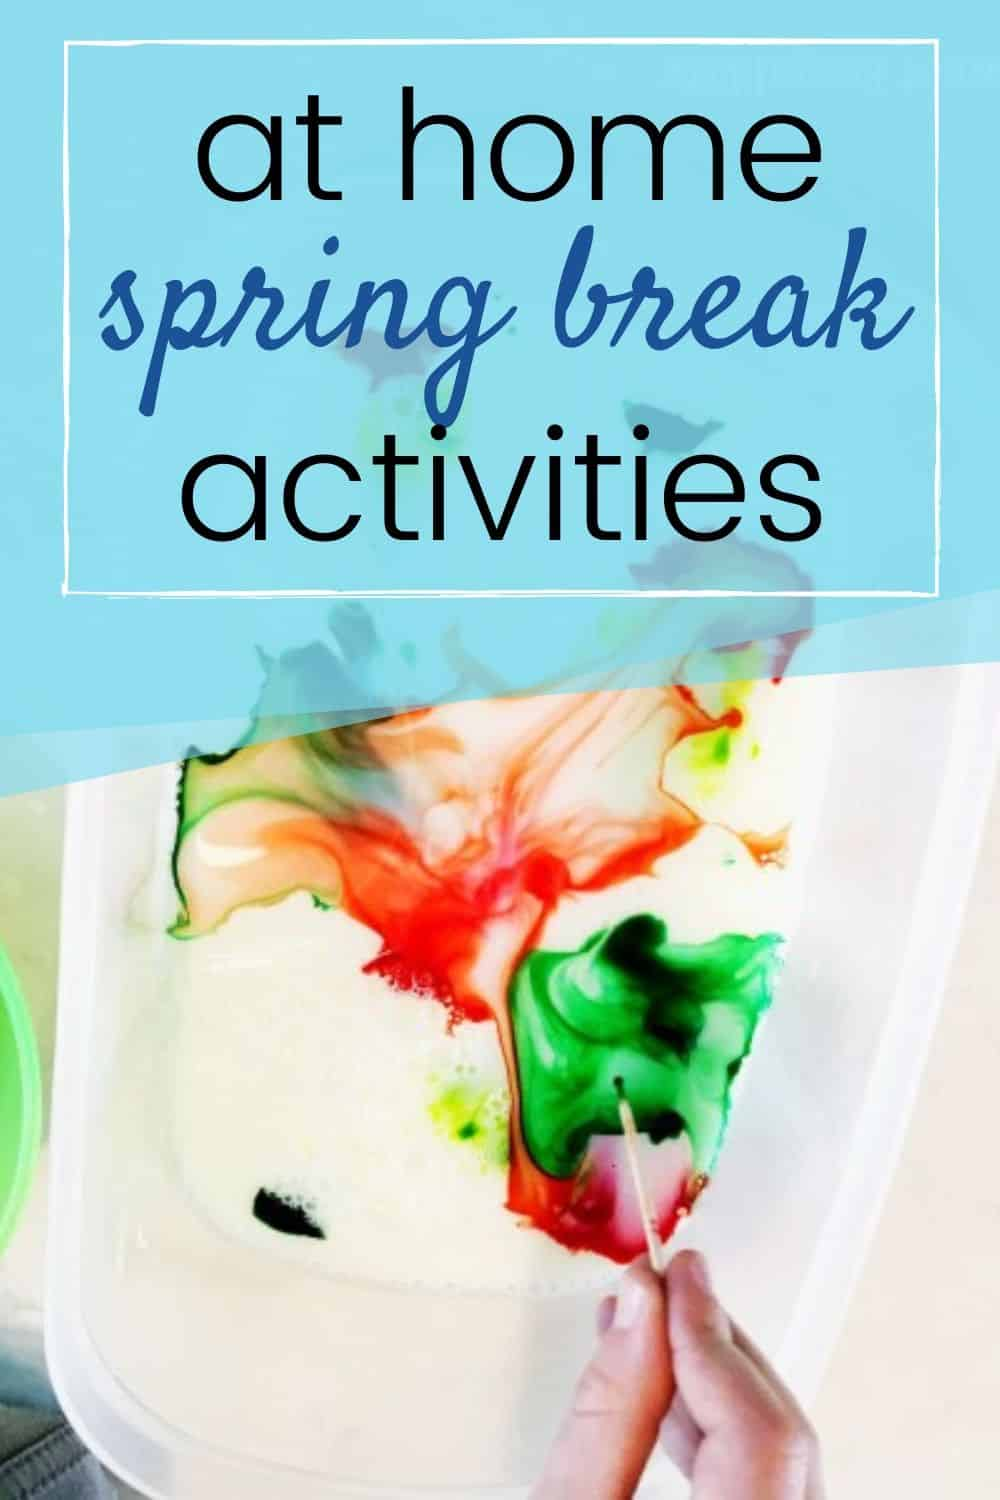 spring break staycation with kids